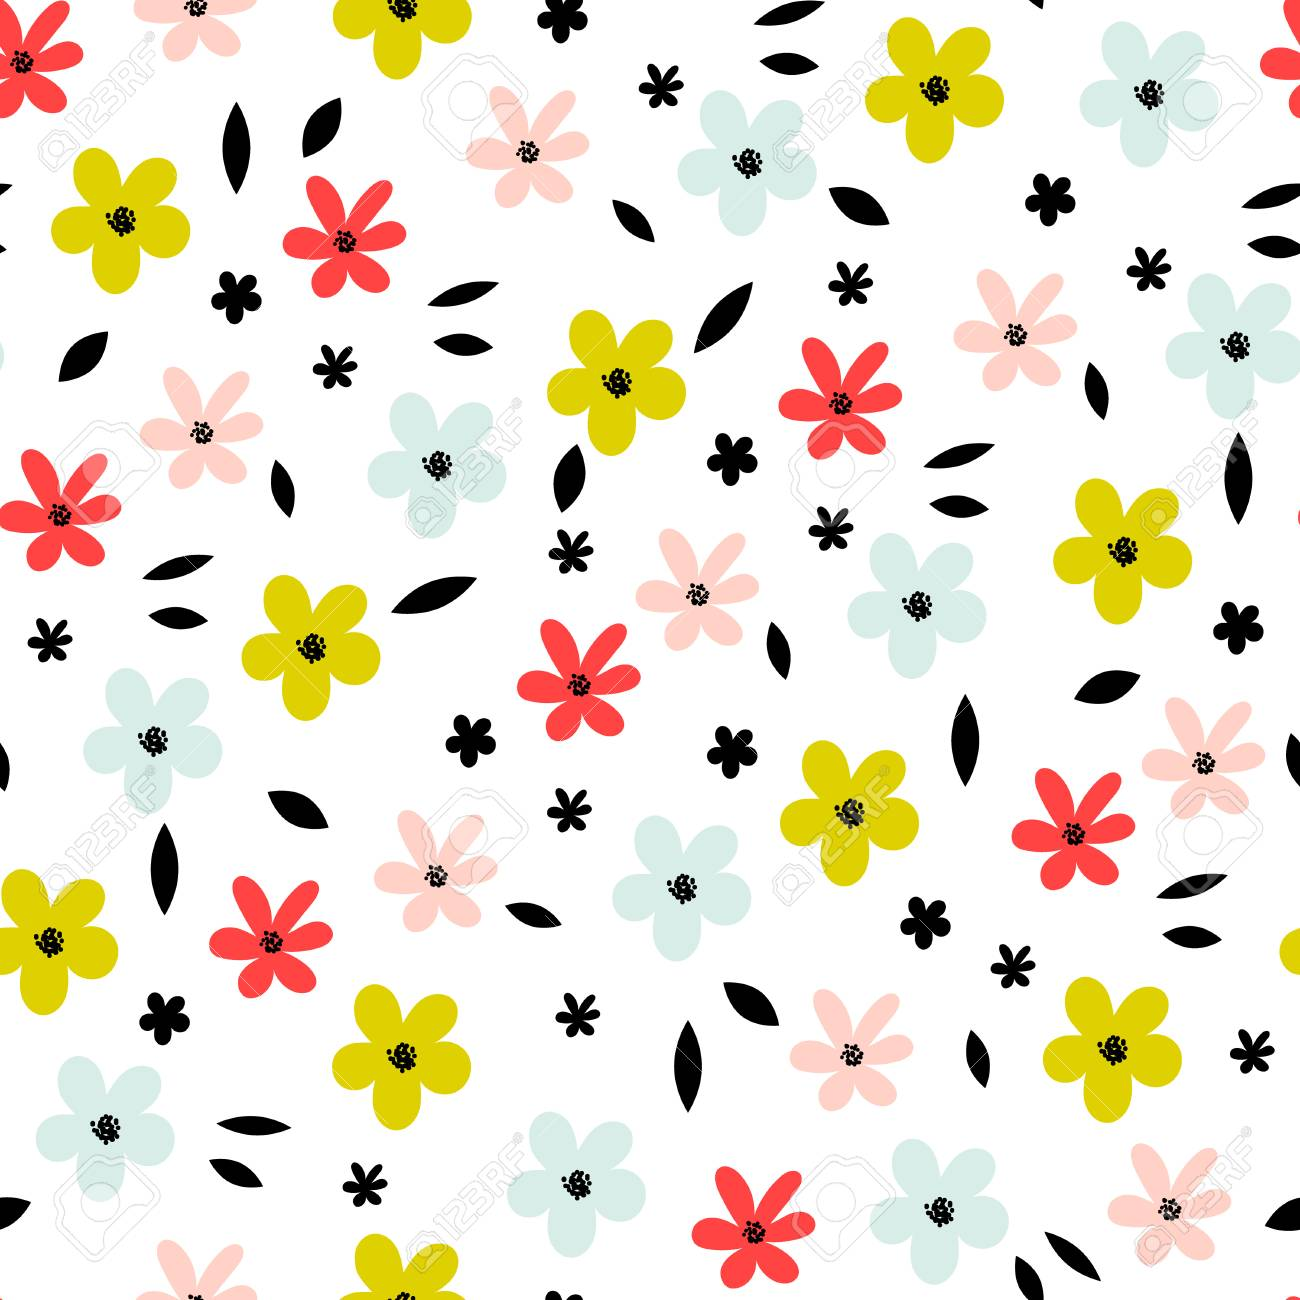 Seamless Floral Pattern With Small Abstract Flower Heads On White